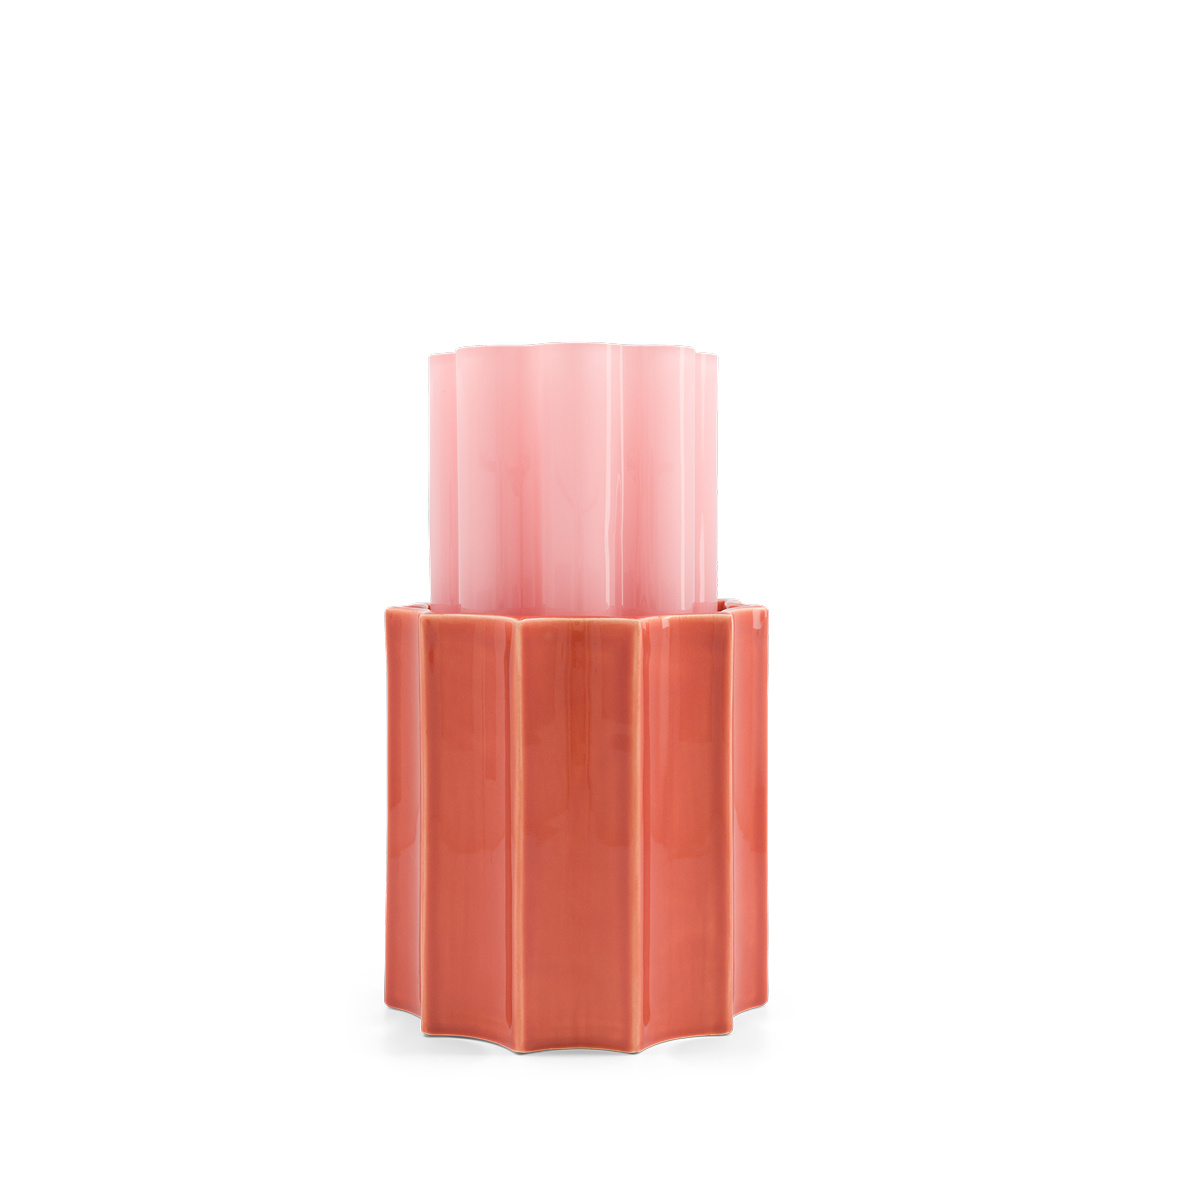 Candy Pink and Terracotta Duetto Vase